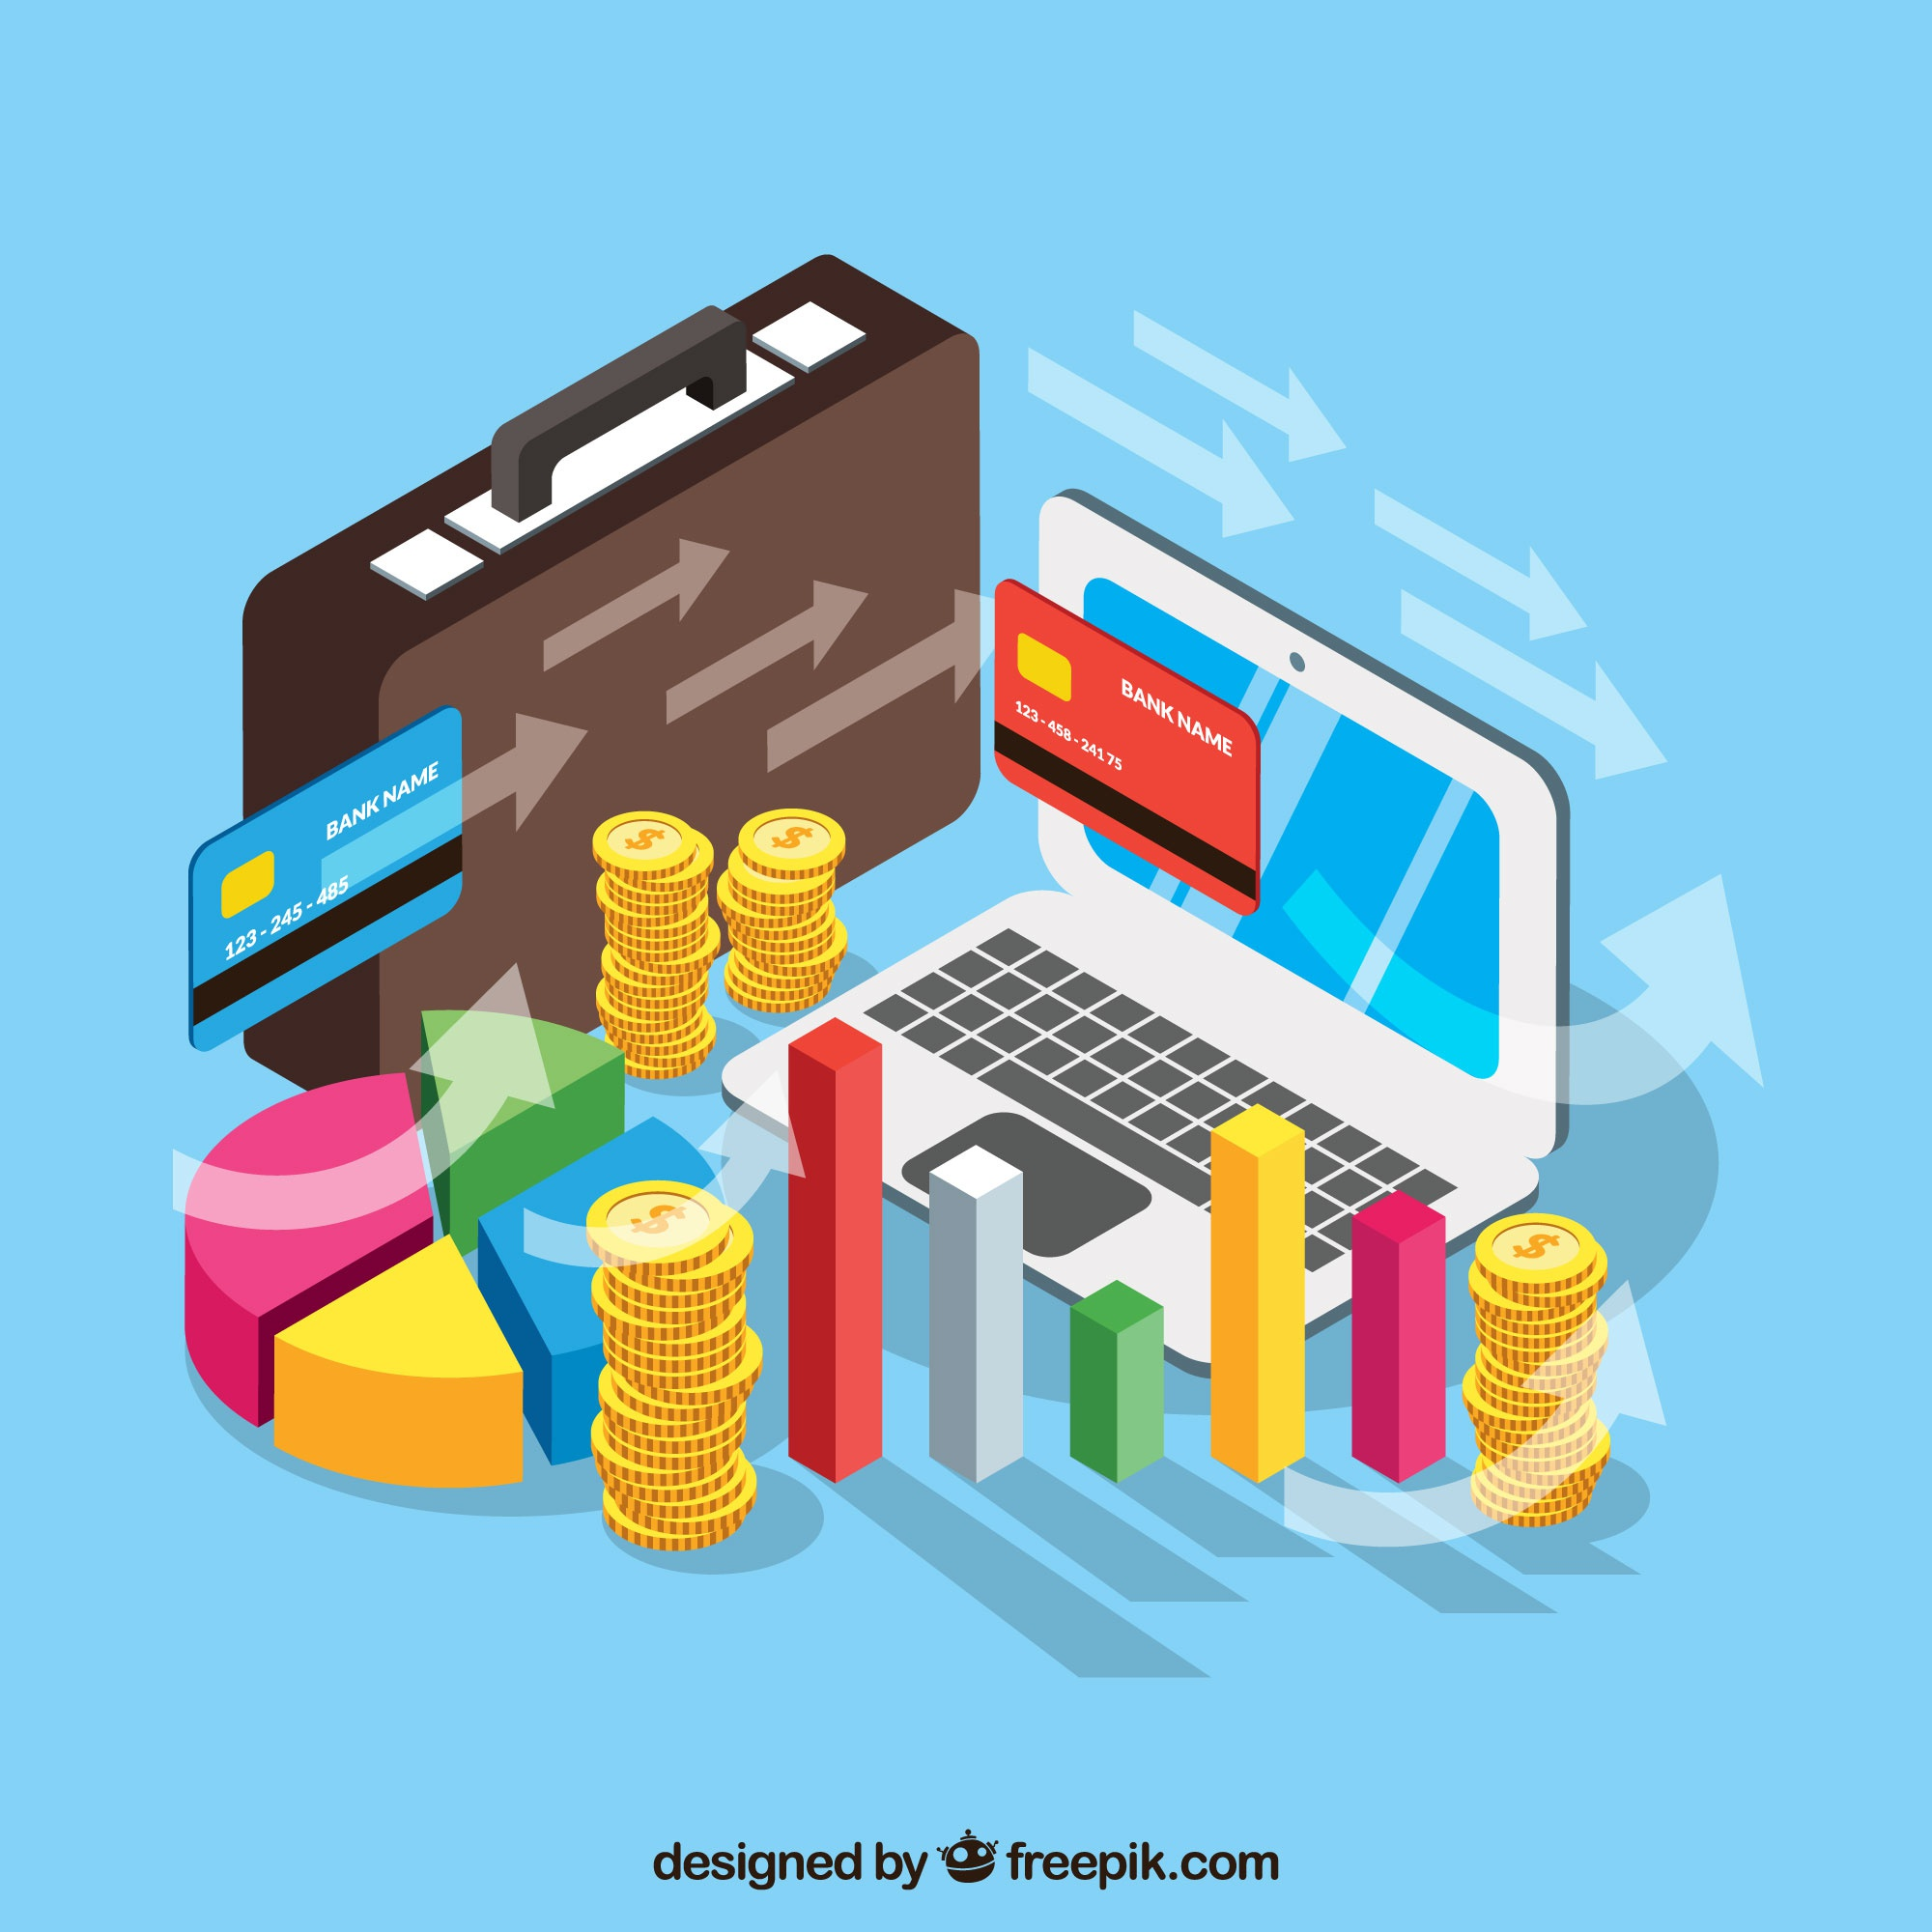 Financial management with isometric perspective